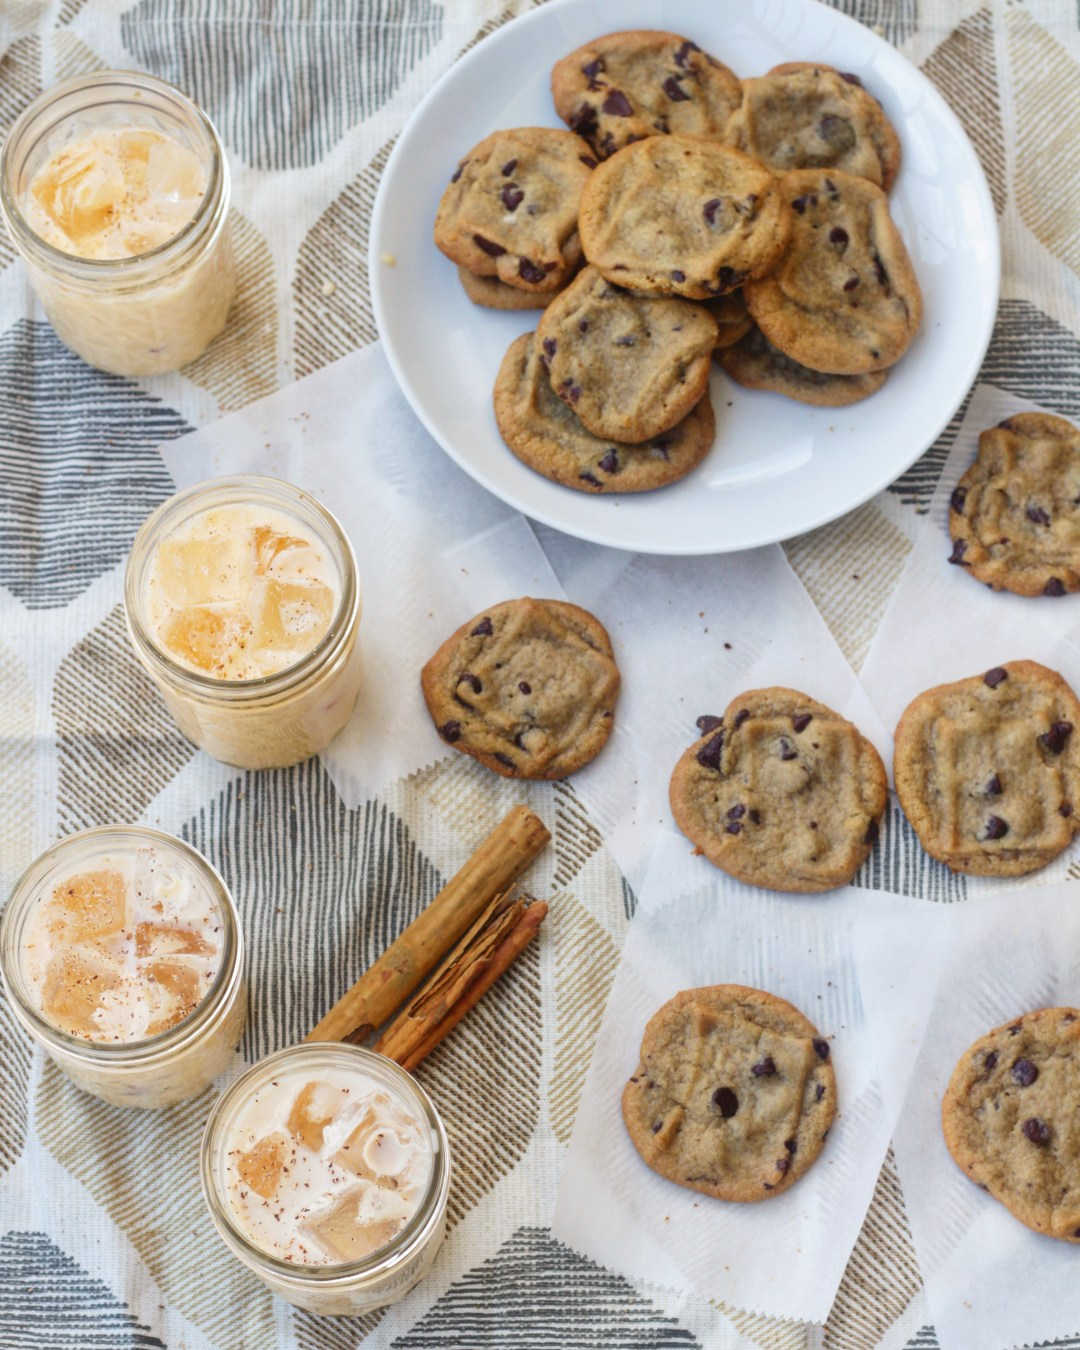 Rumchata Eggnog Latte – The Perfect Cocktail for a Chocolate Chip Cookie